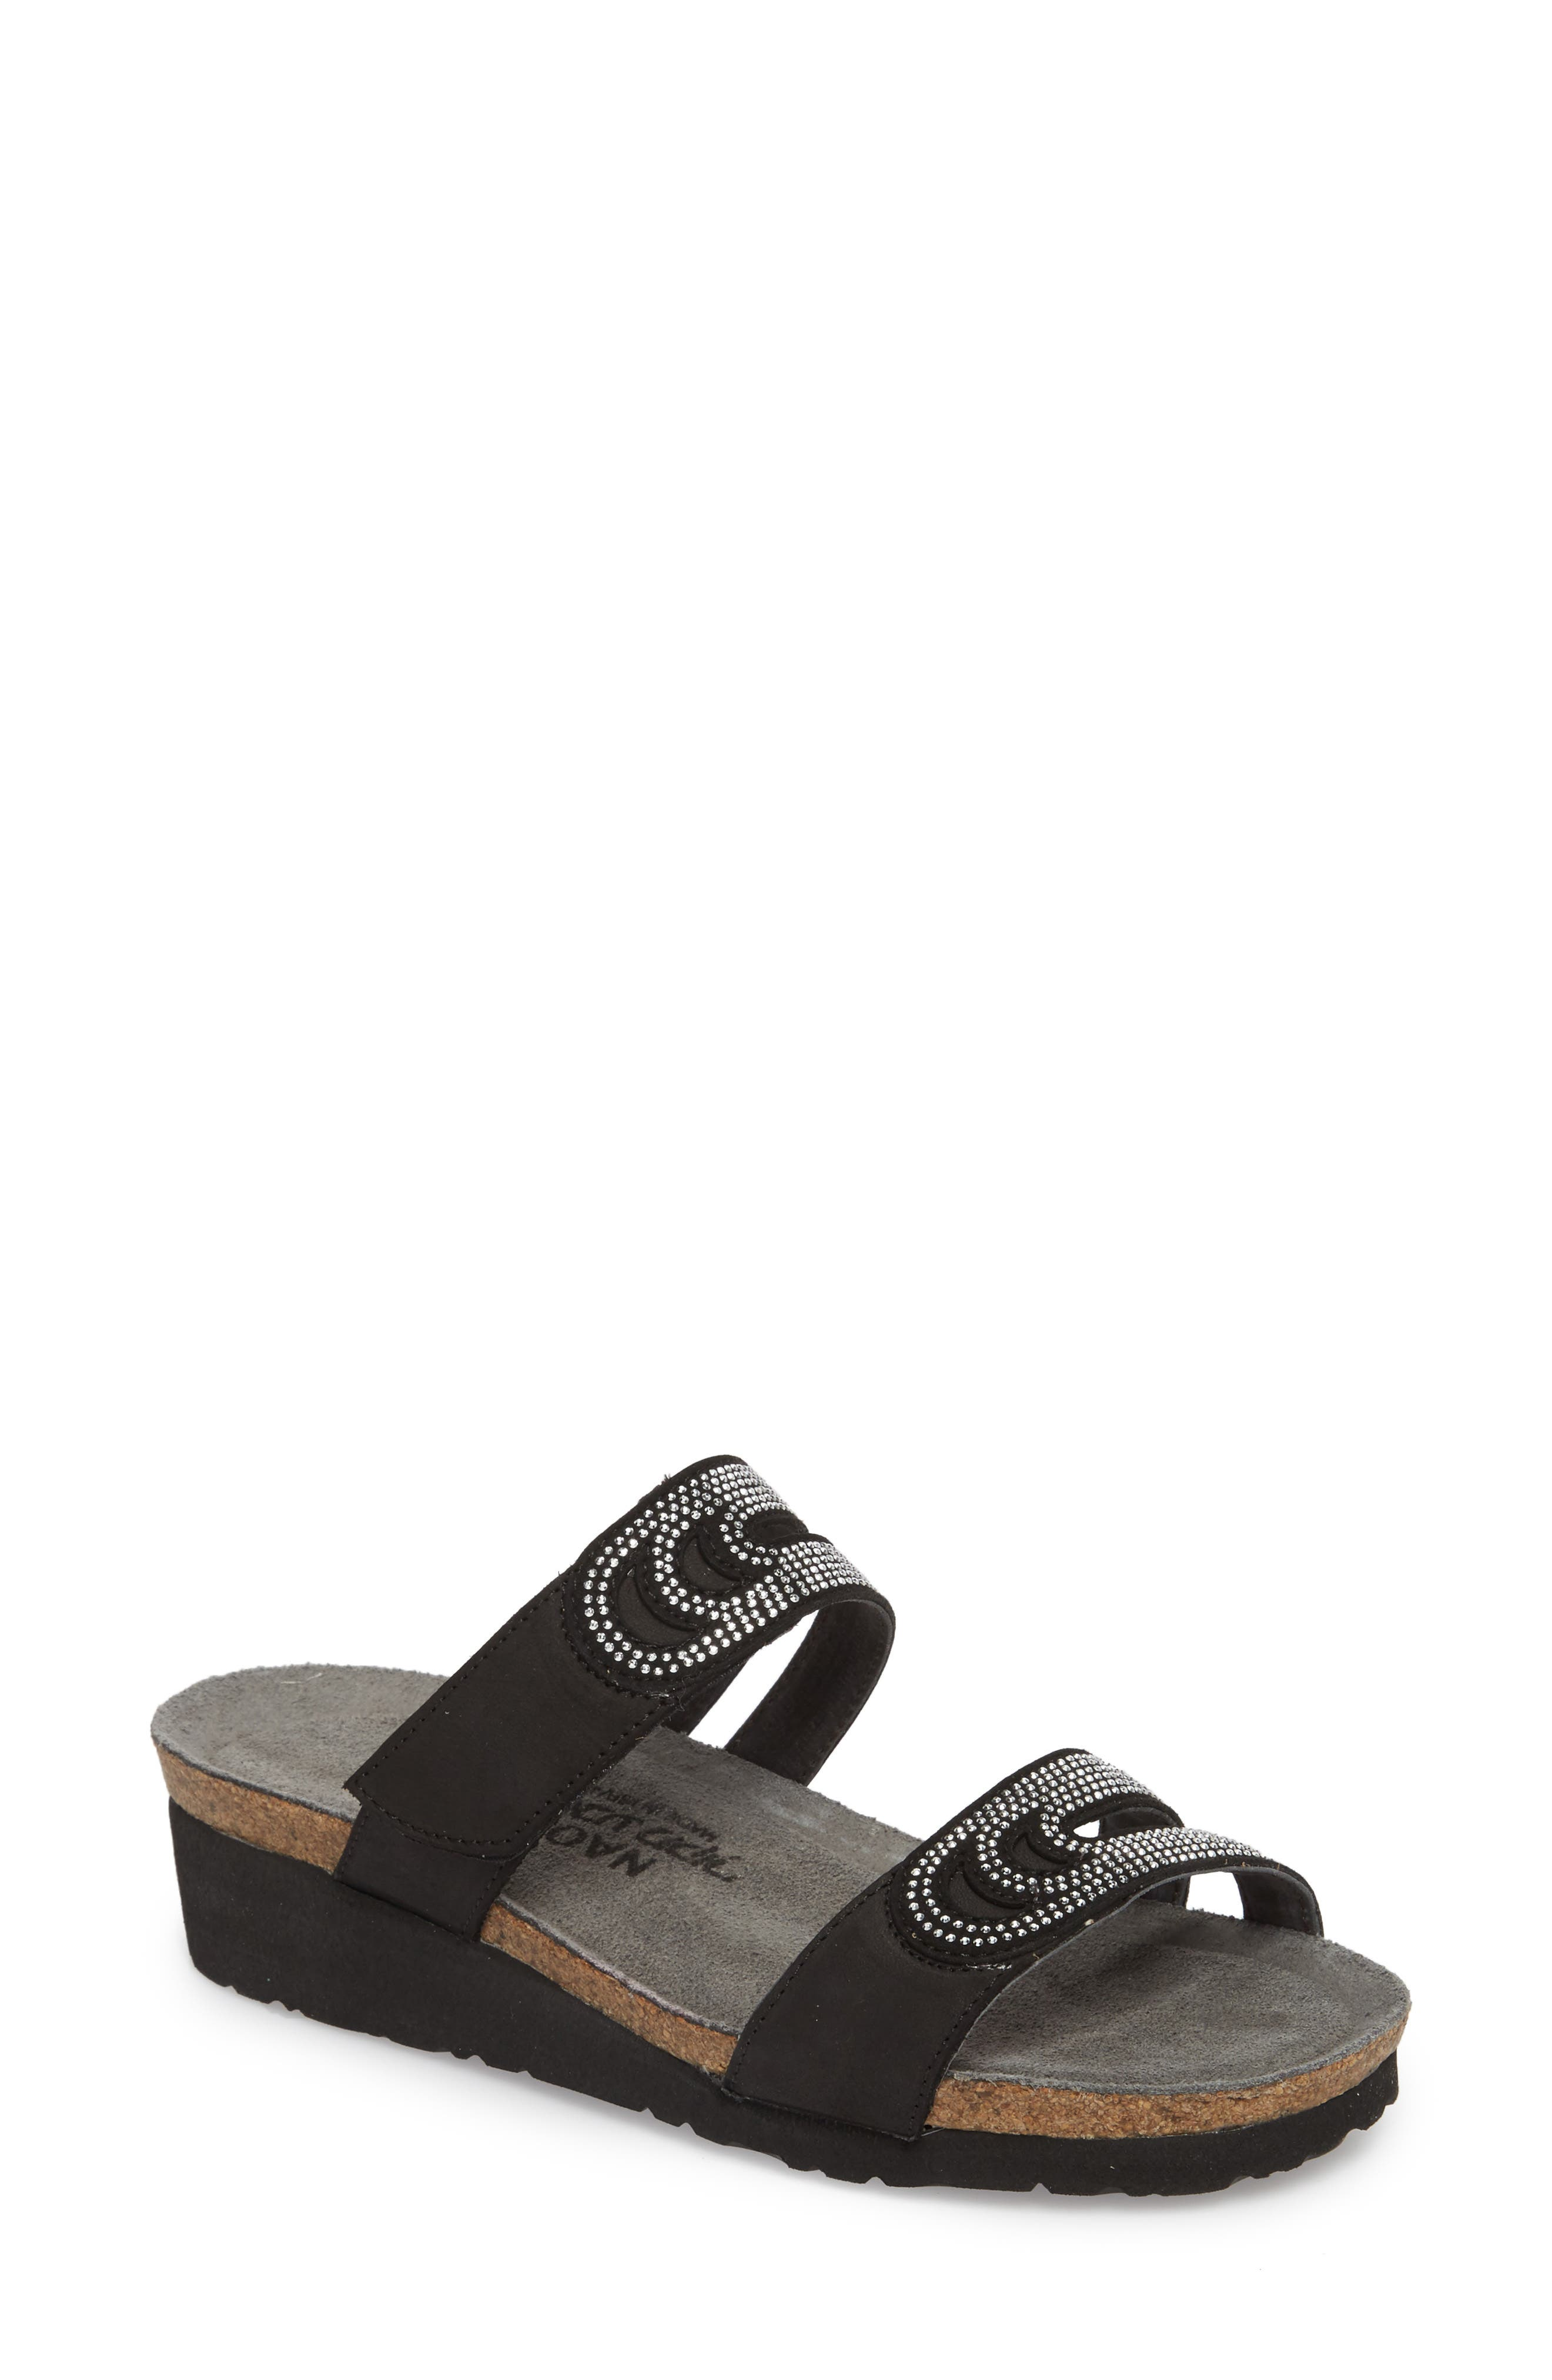 Ainsley Studded Slide Sandal,                             Main thumbnail 1, color,                             BLACK NUBUCK